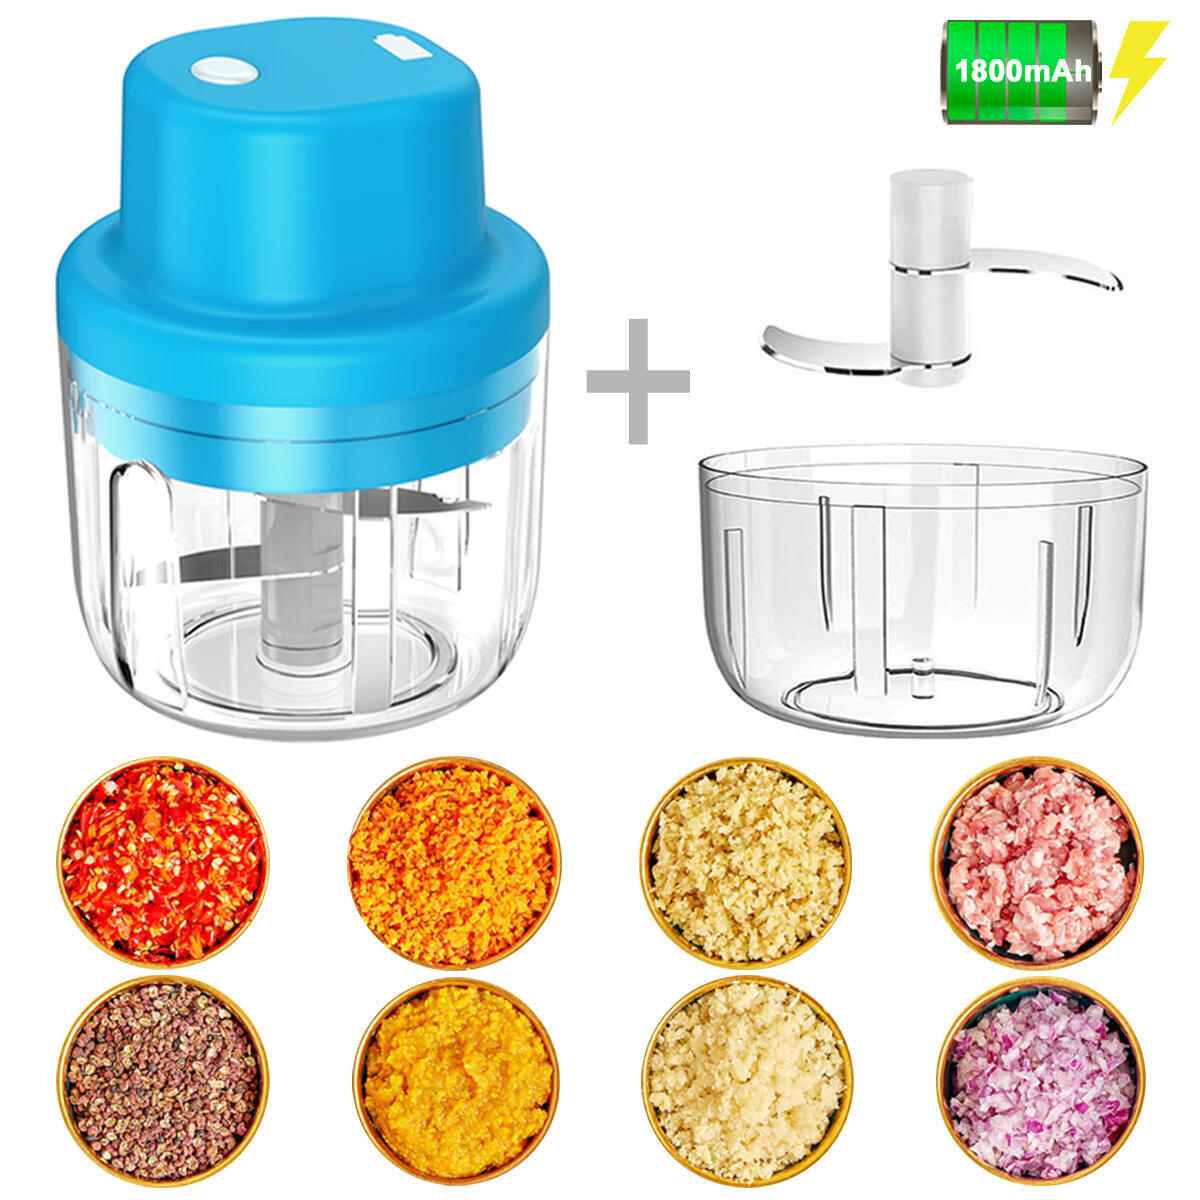 Electric Mini Garlic Chopper Mincer Cutter Masher, 【Upgrade】 300ML & 150ML 45W Powerful Wireless Portable Small Food Processor Handheld Blender Grinder For Meat Onion Ginger Chili Pepper Vegetable Nut